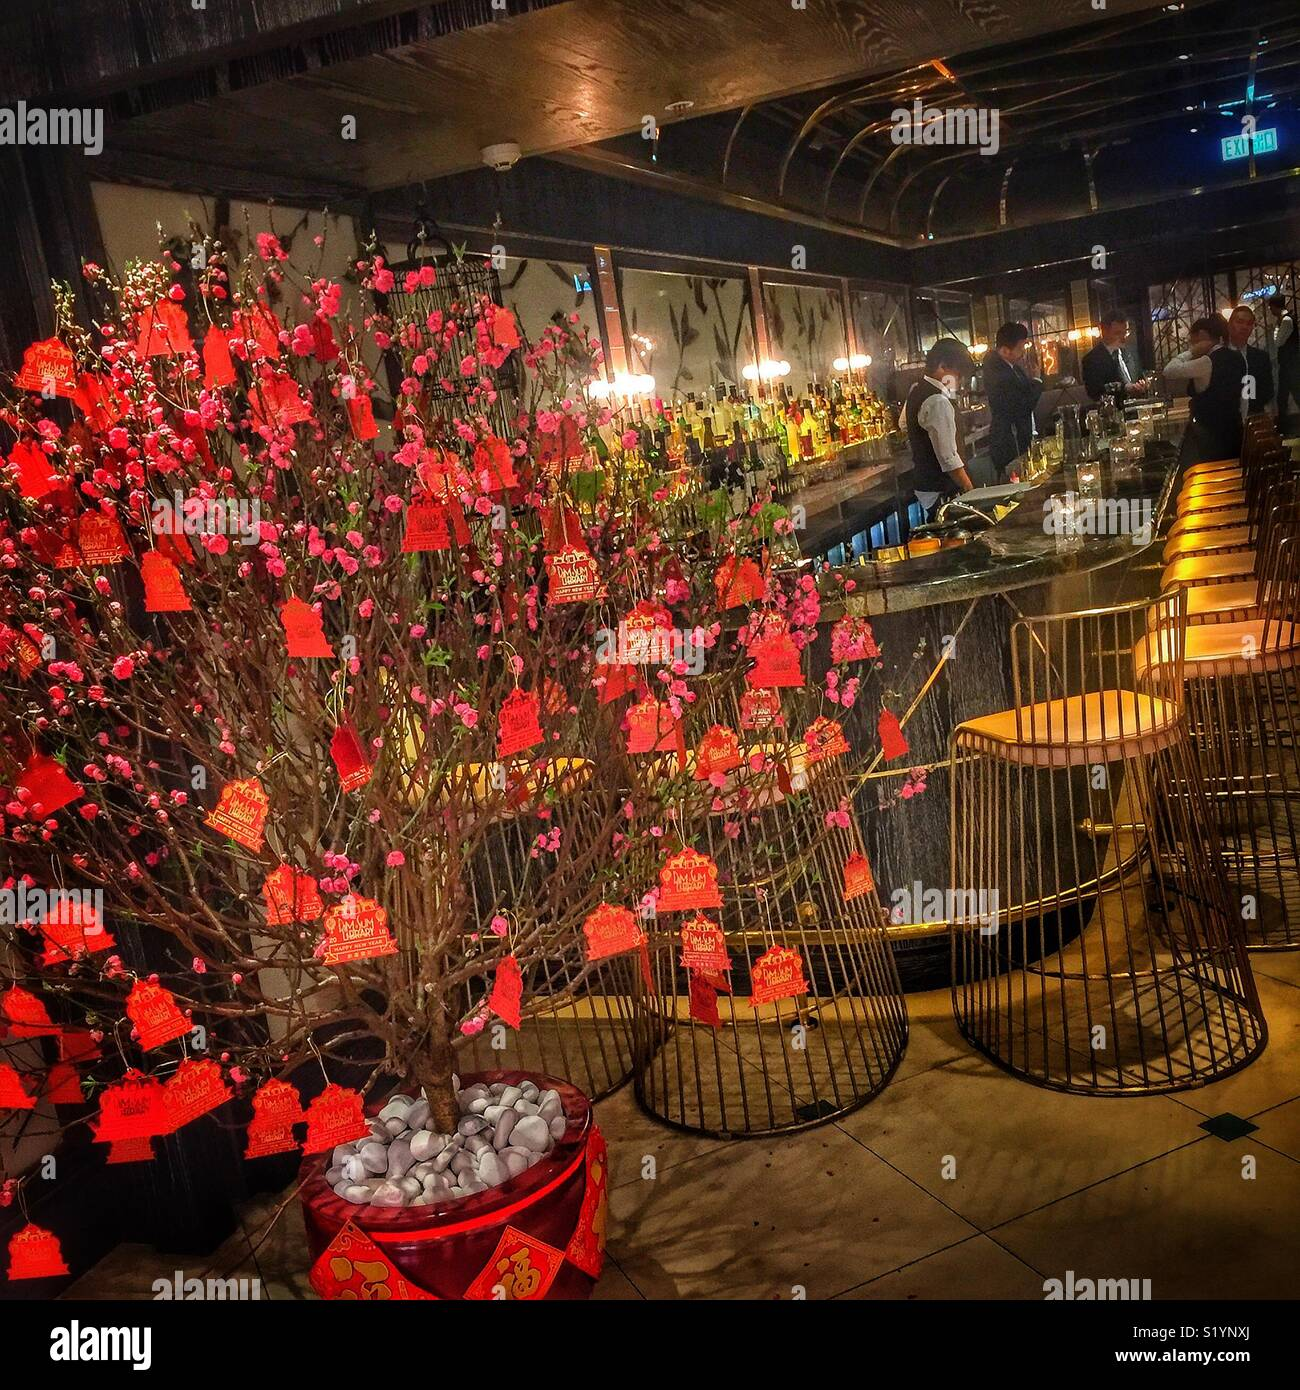 A Plum Blossom Tree Celebrating The Chinese New Year Of The Dog 2018 At The Entrance